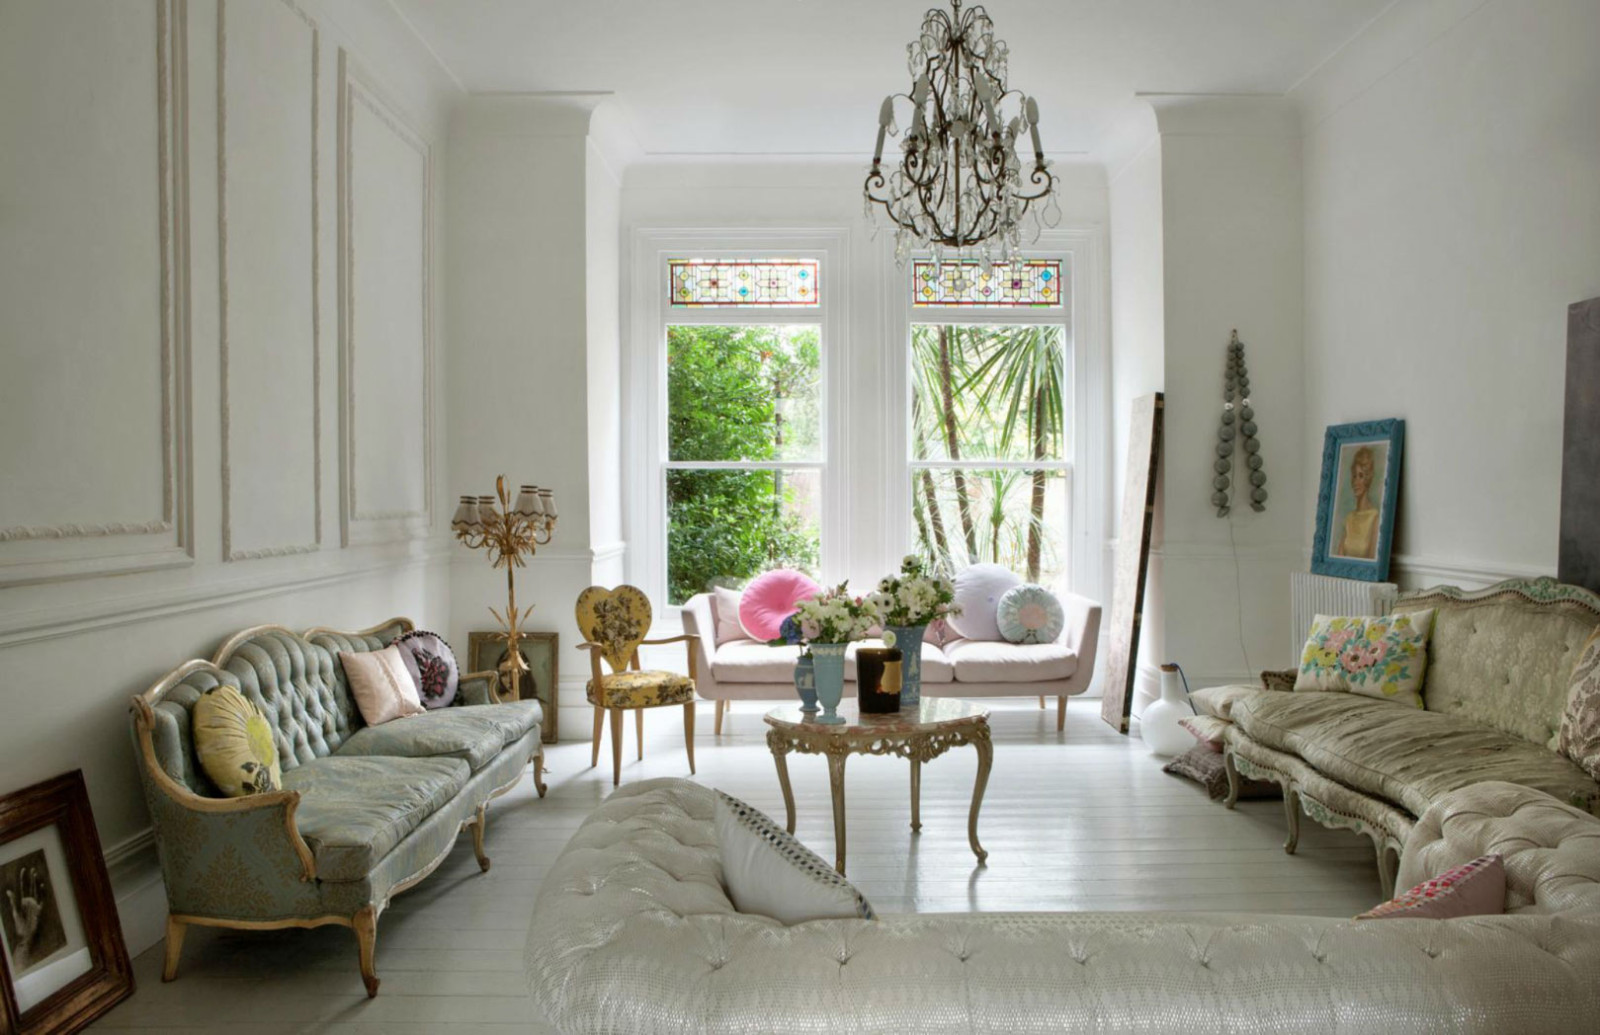 Mapesbury road chez la styliste anglaise marianne cotterill - Decoration interieur anglais ...